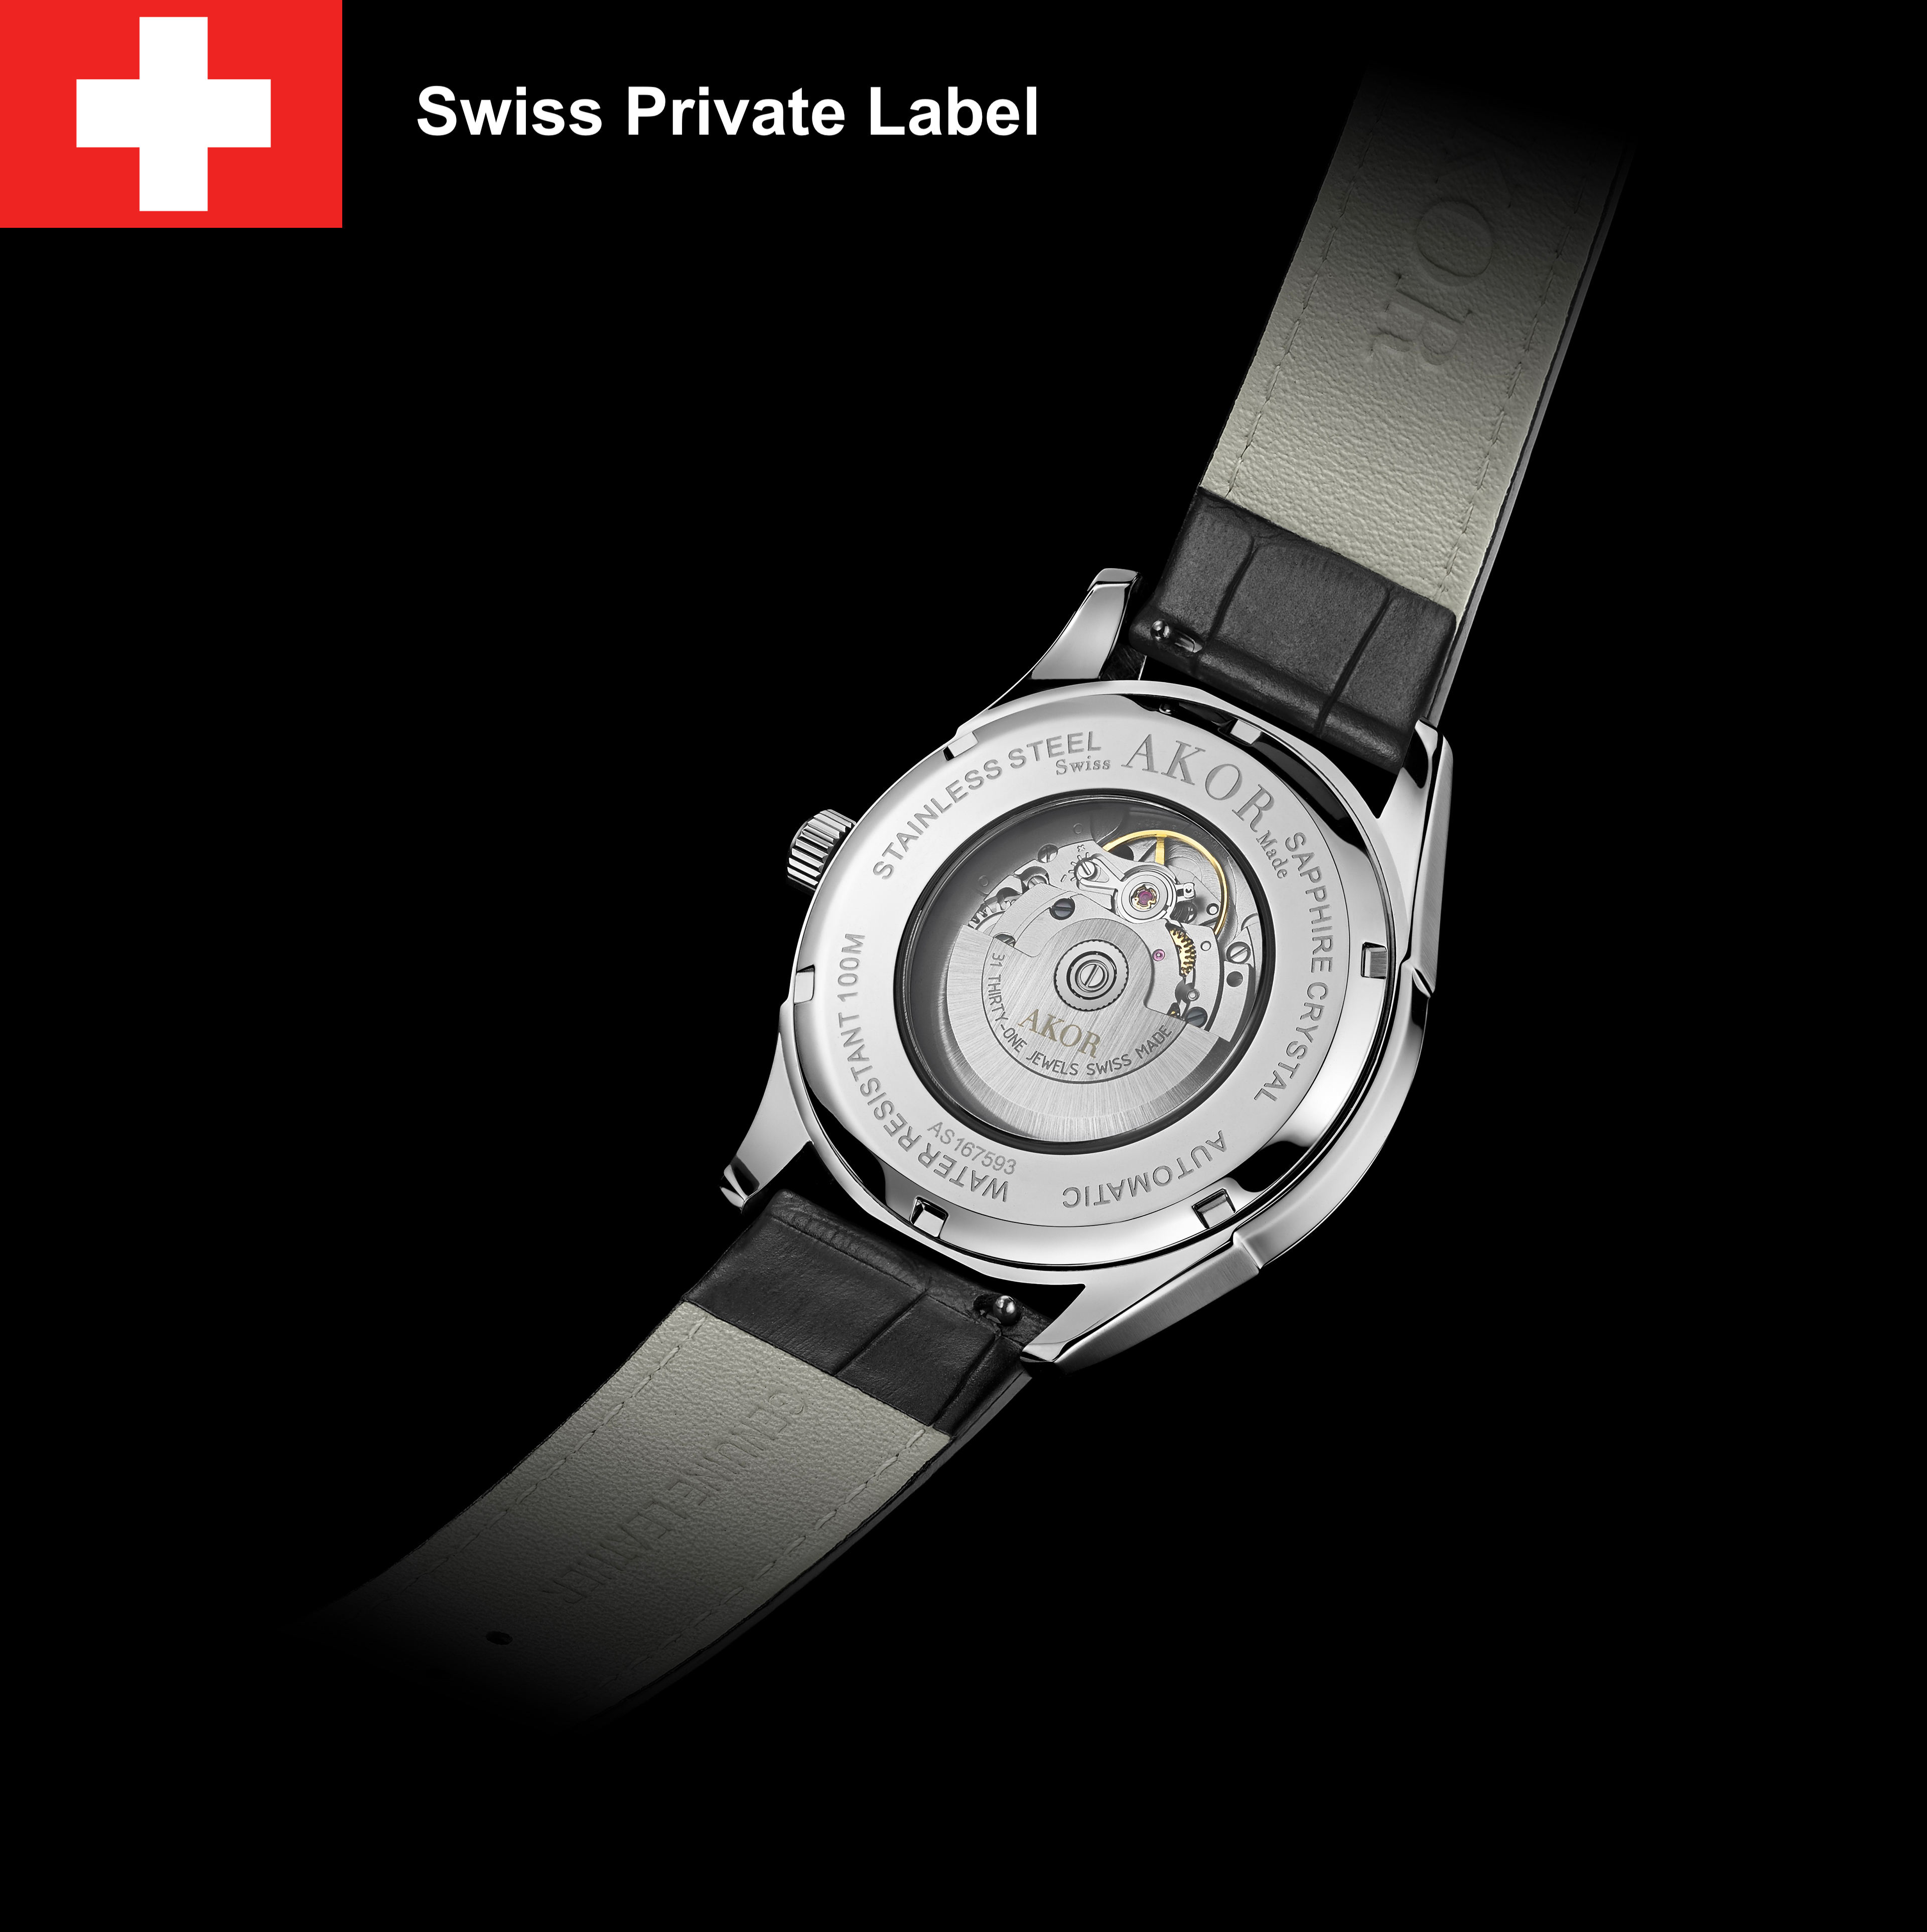 AUTOMATIC SWISS MADE WATCH private label watch Manufacture in Switzerland, QUARTZ SKELETON